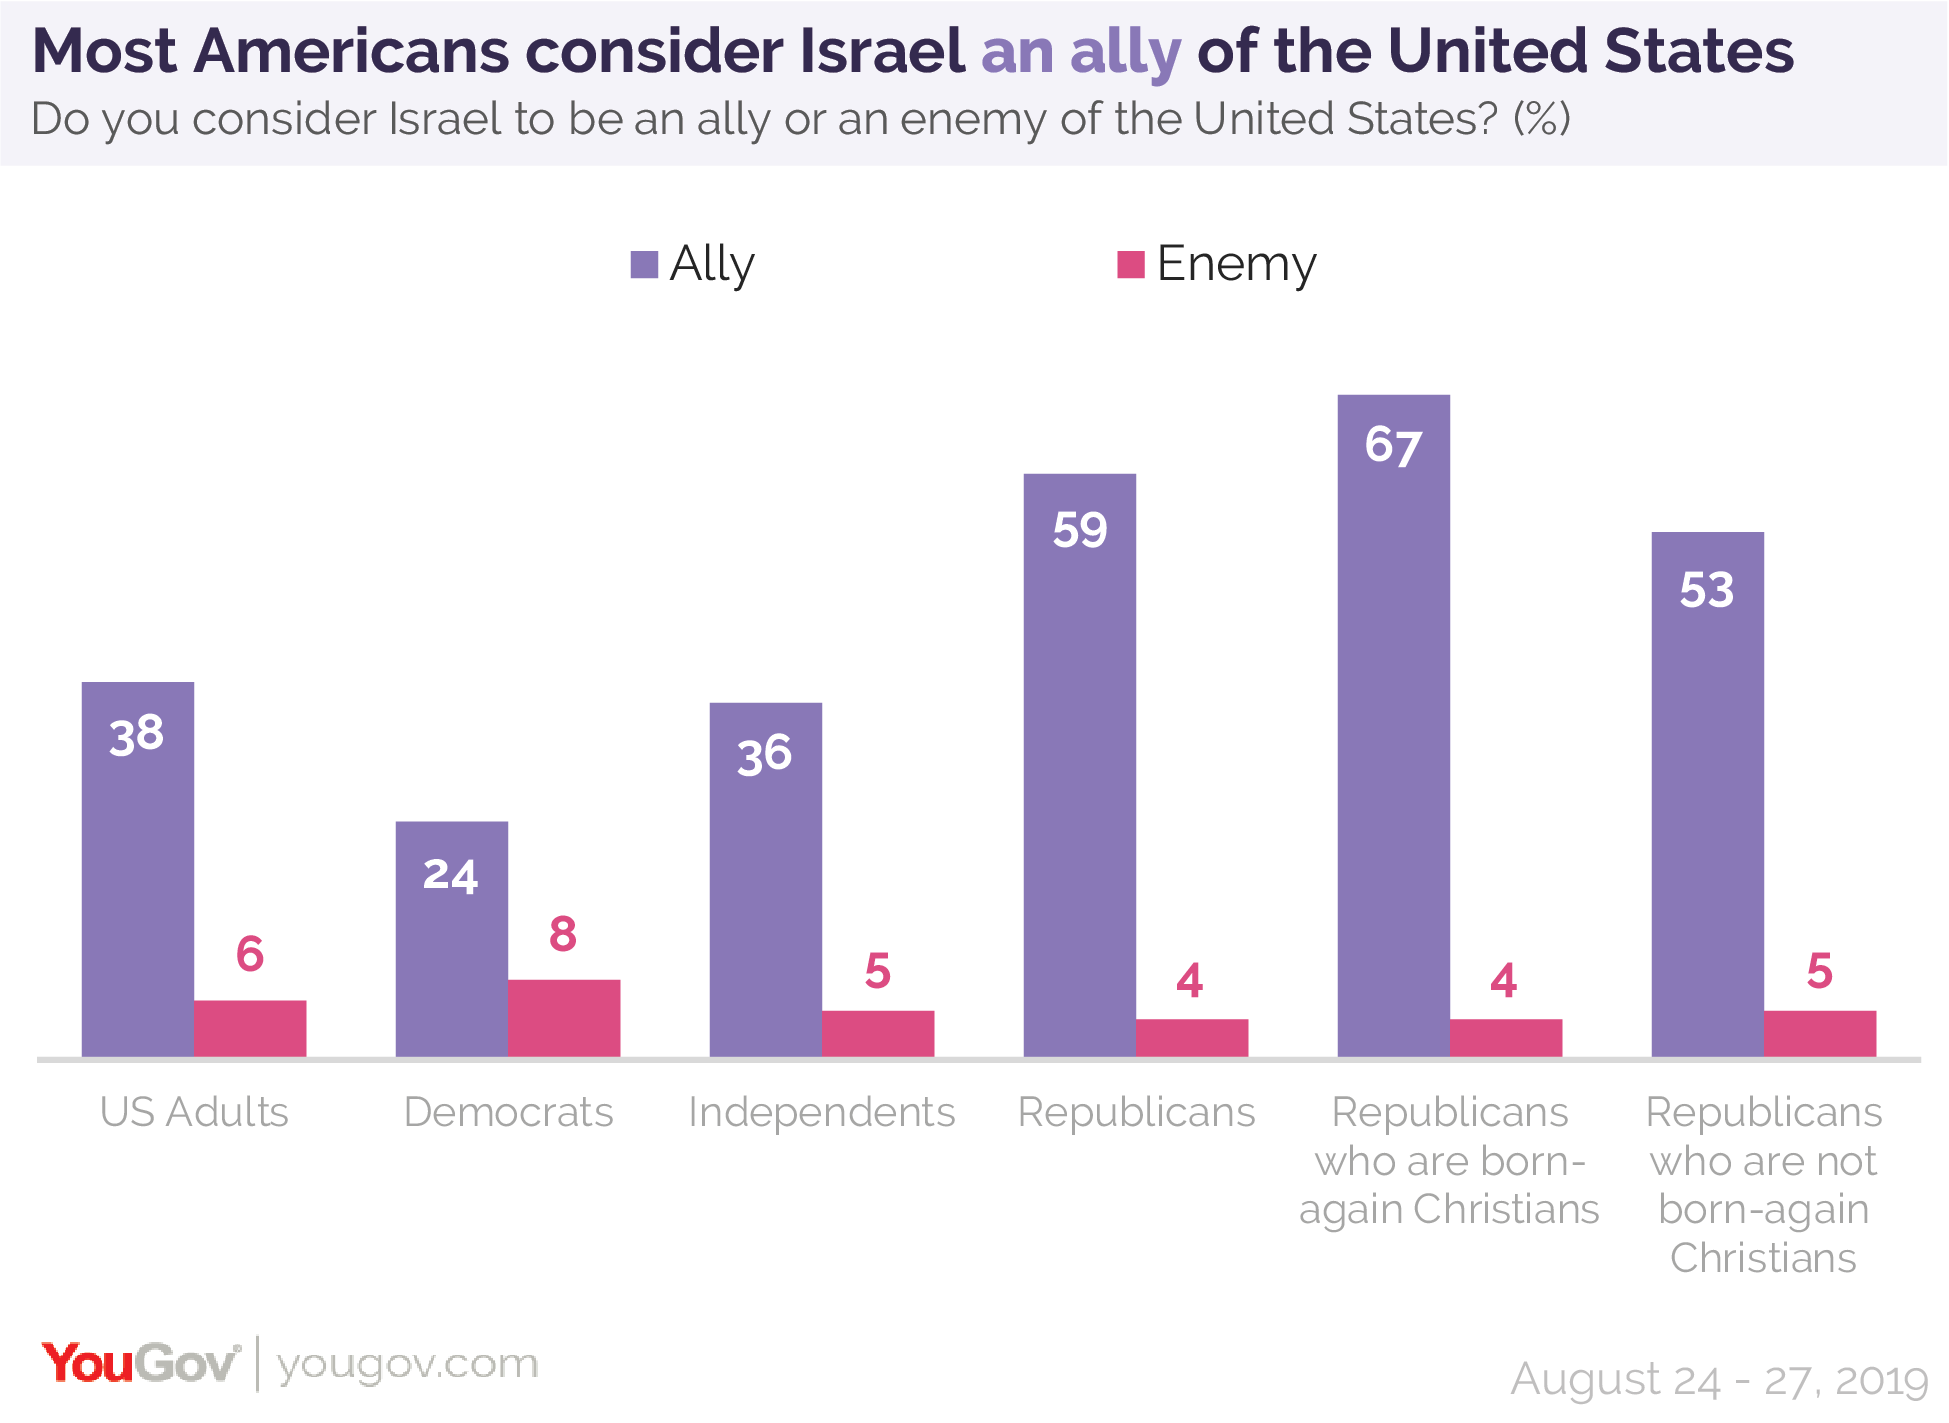 Most Americans consider Israel an ally of the United States